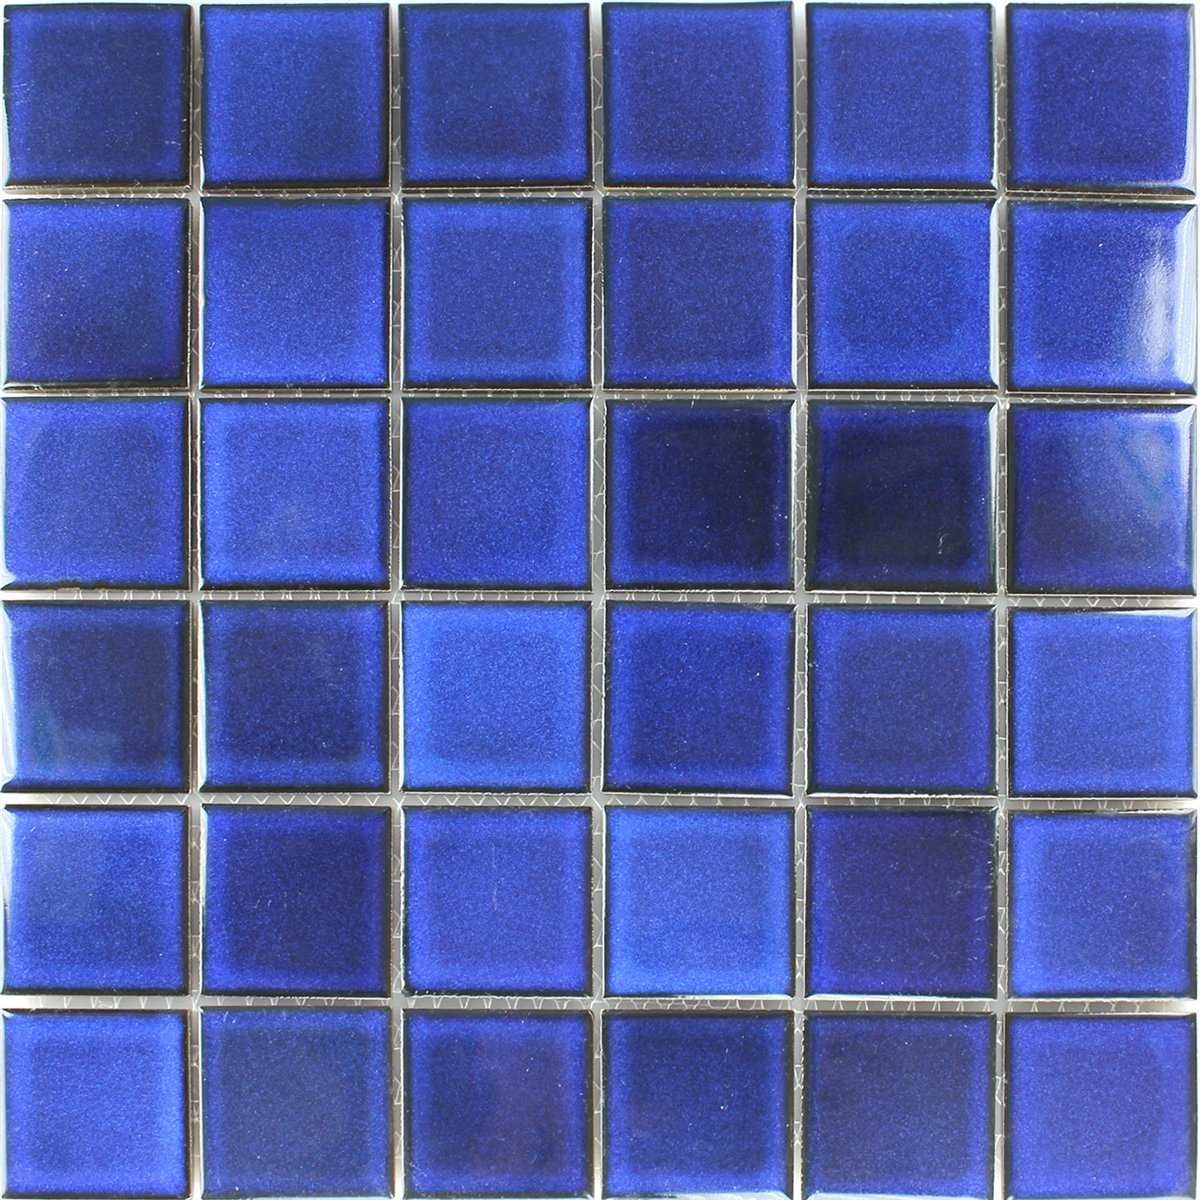 Blue Mosaic Tile - Tile Designs